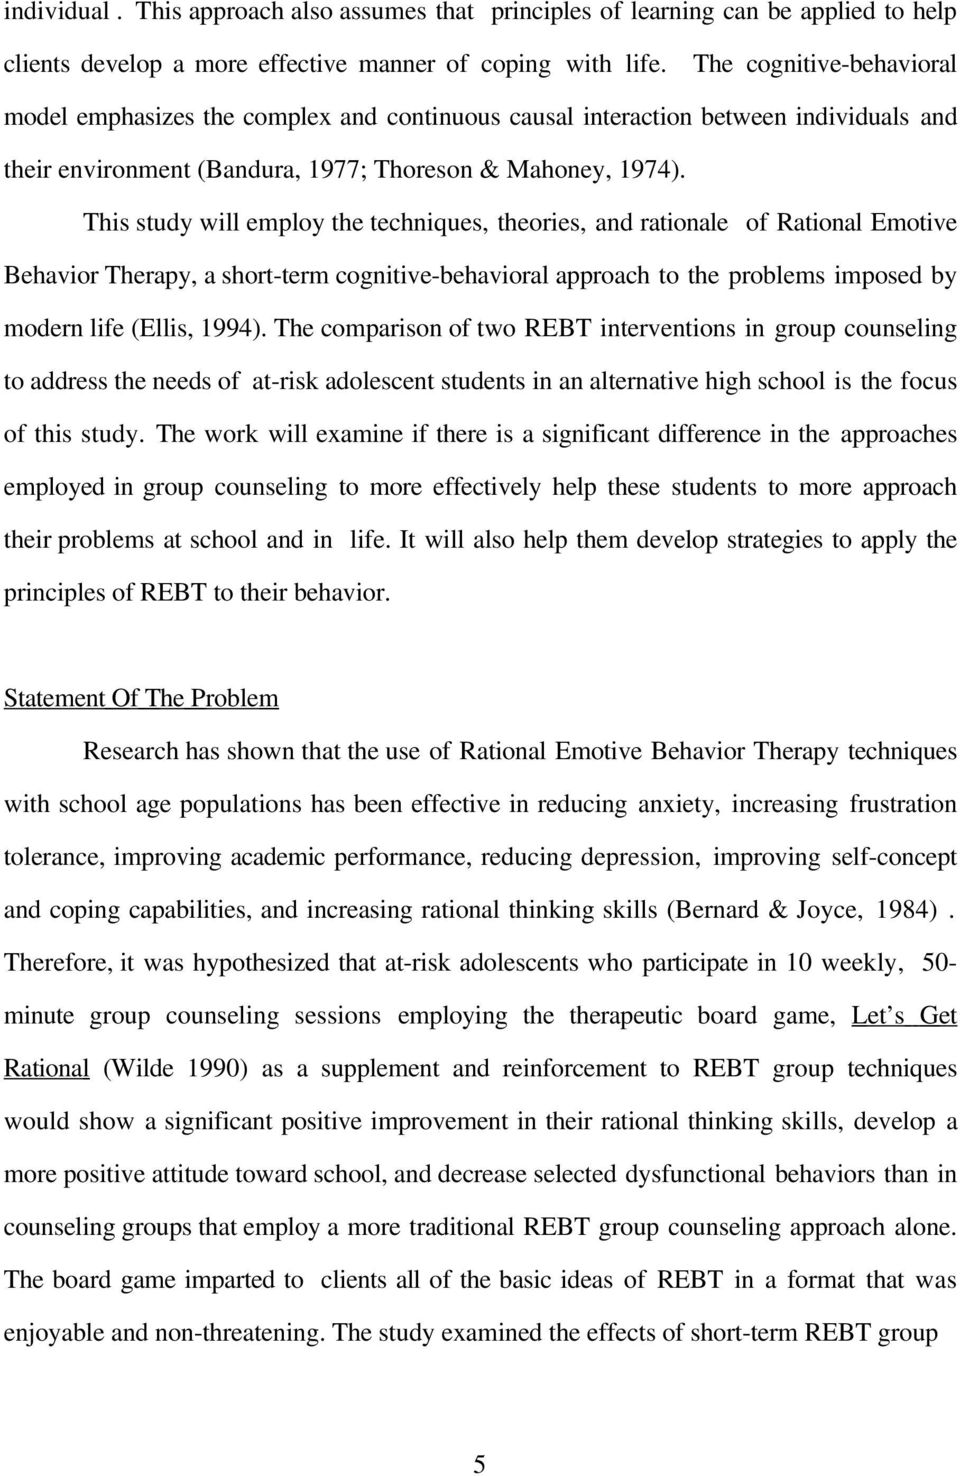 This study will employ the techniques, theories, and rationale of Rational Emotive Behavior Therapy, a short-term cognitive-behavioral approach to the problems imposed by modern life (Ellis, 1994).